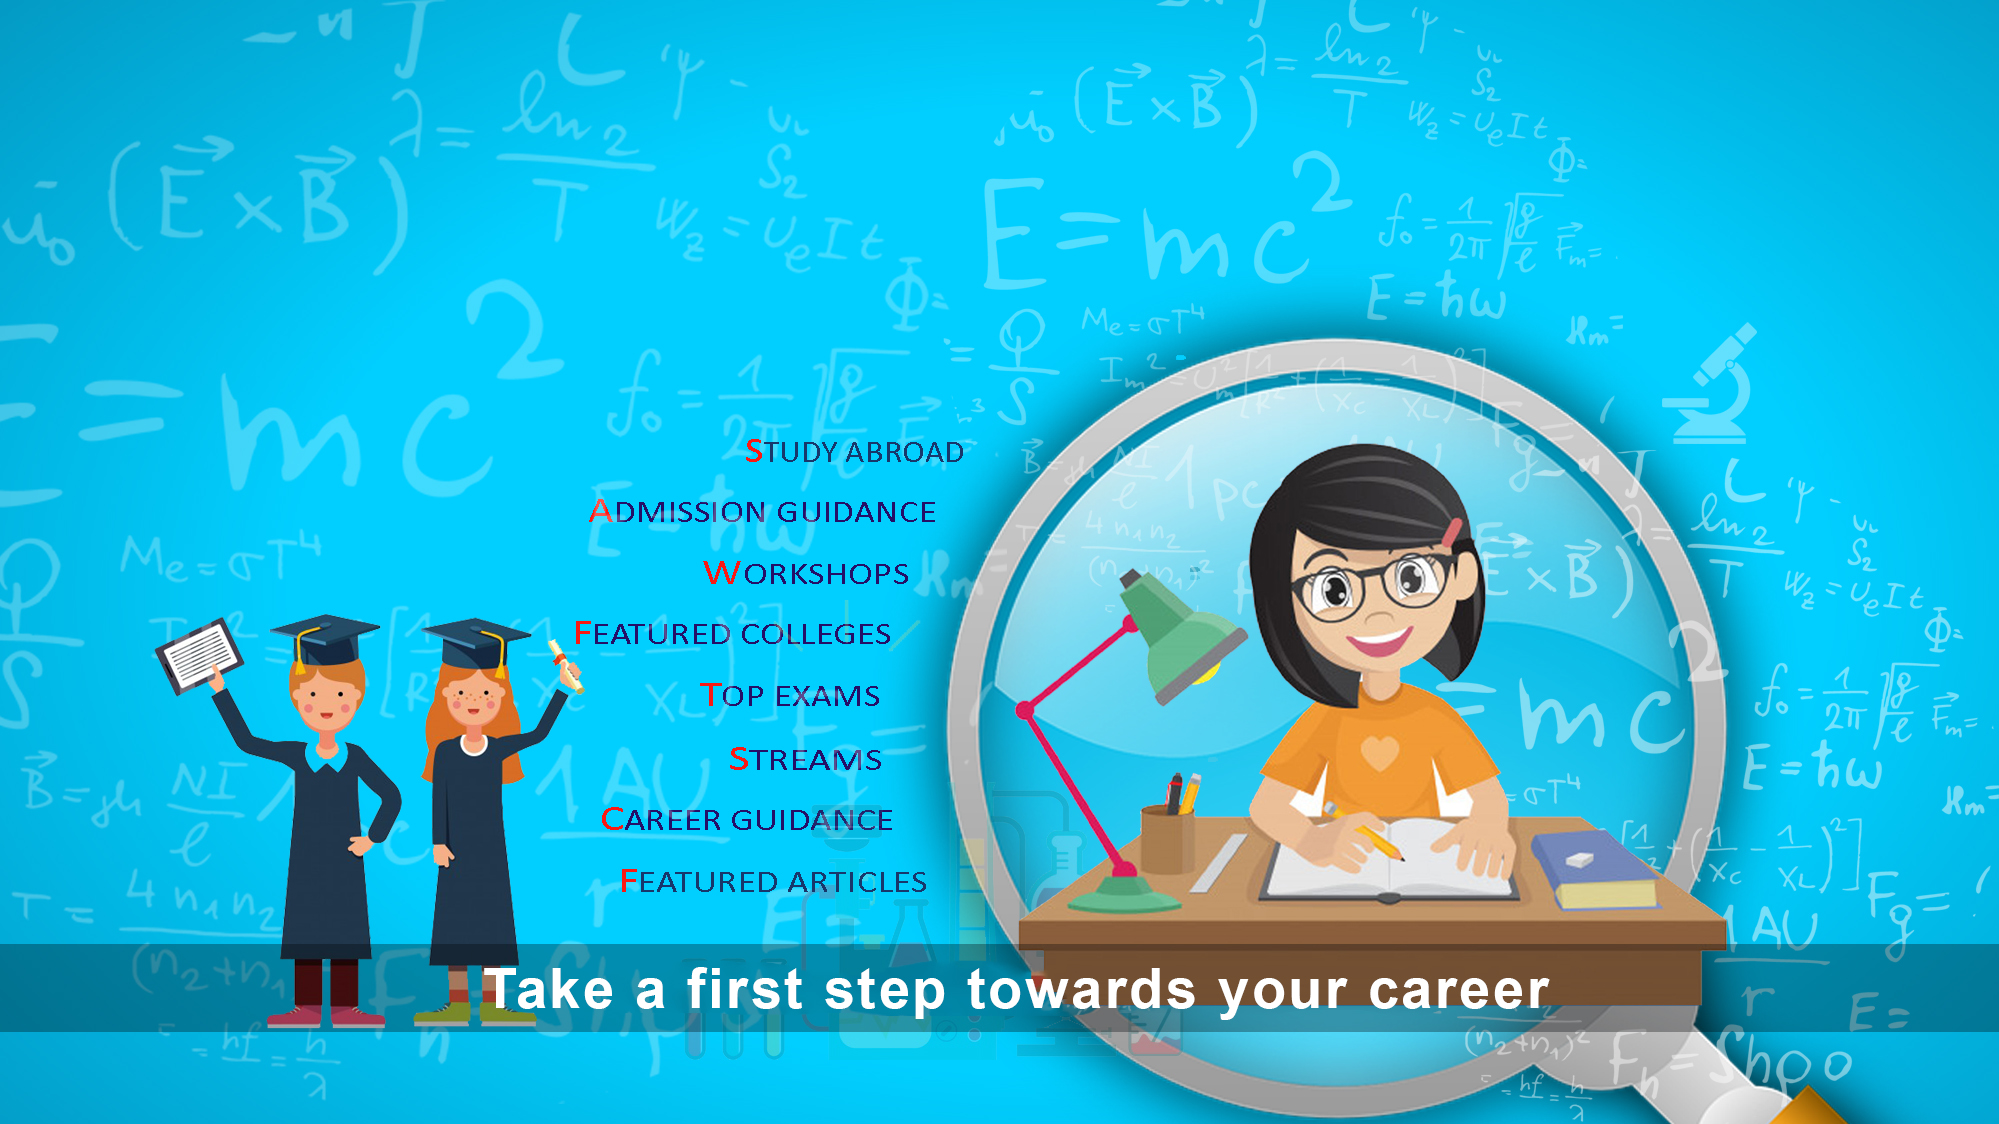 Education Counselor & Career Counselor Services in India